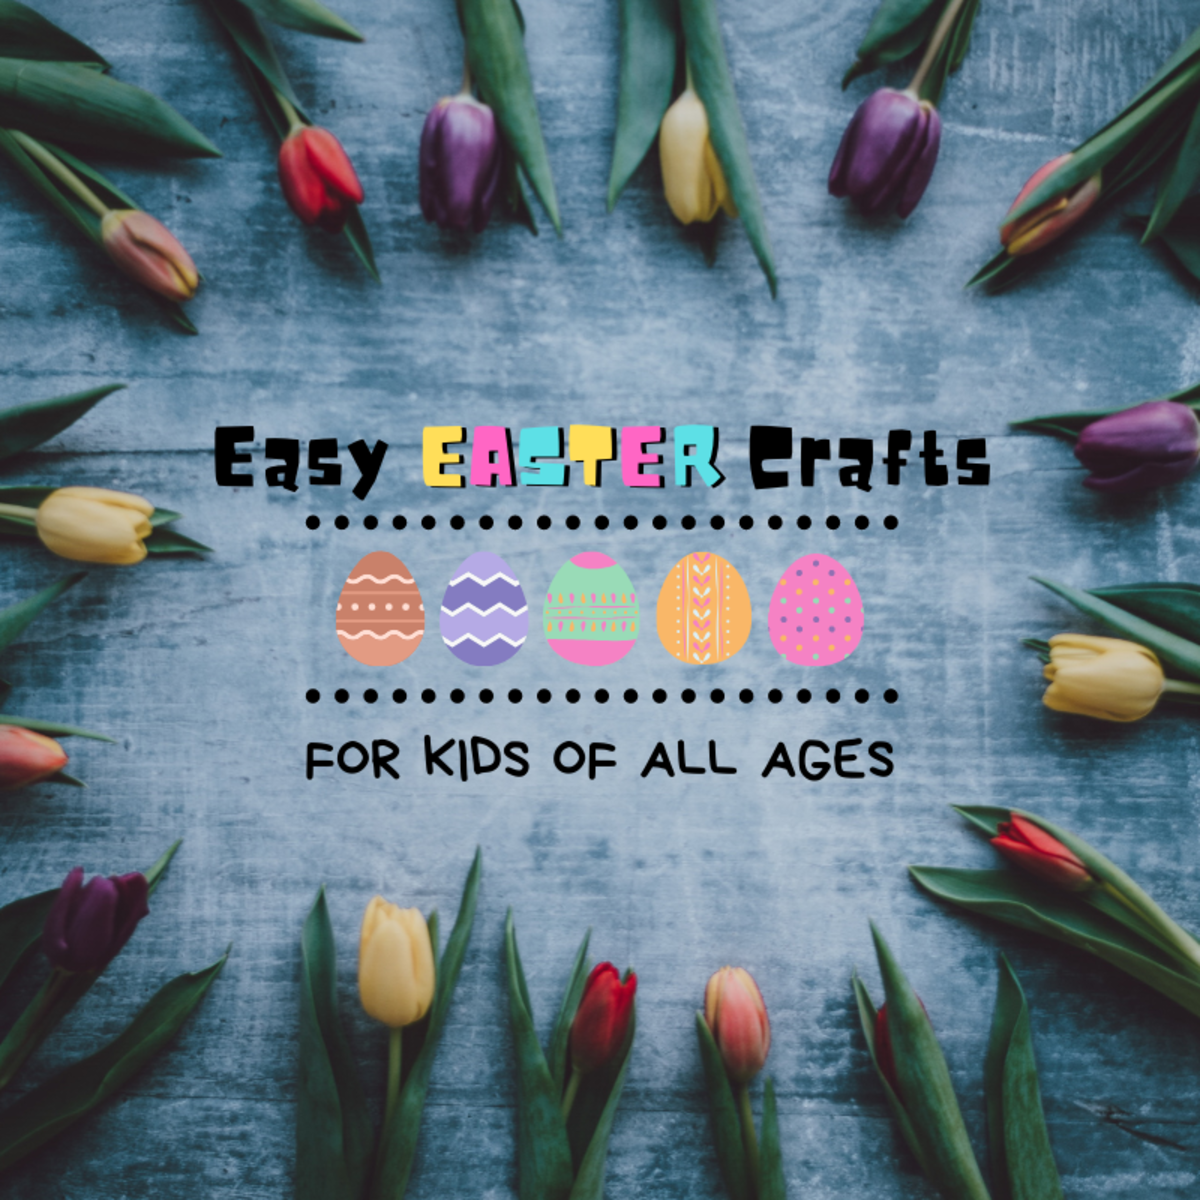 These six crafts are perfect for getting creative with the kids on Easter!